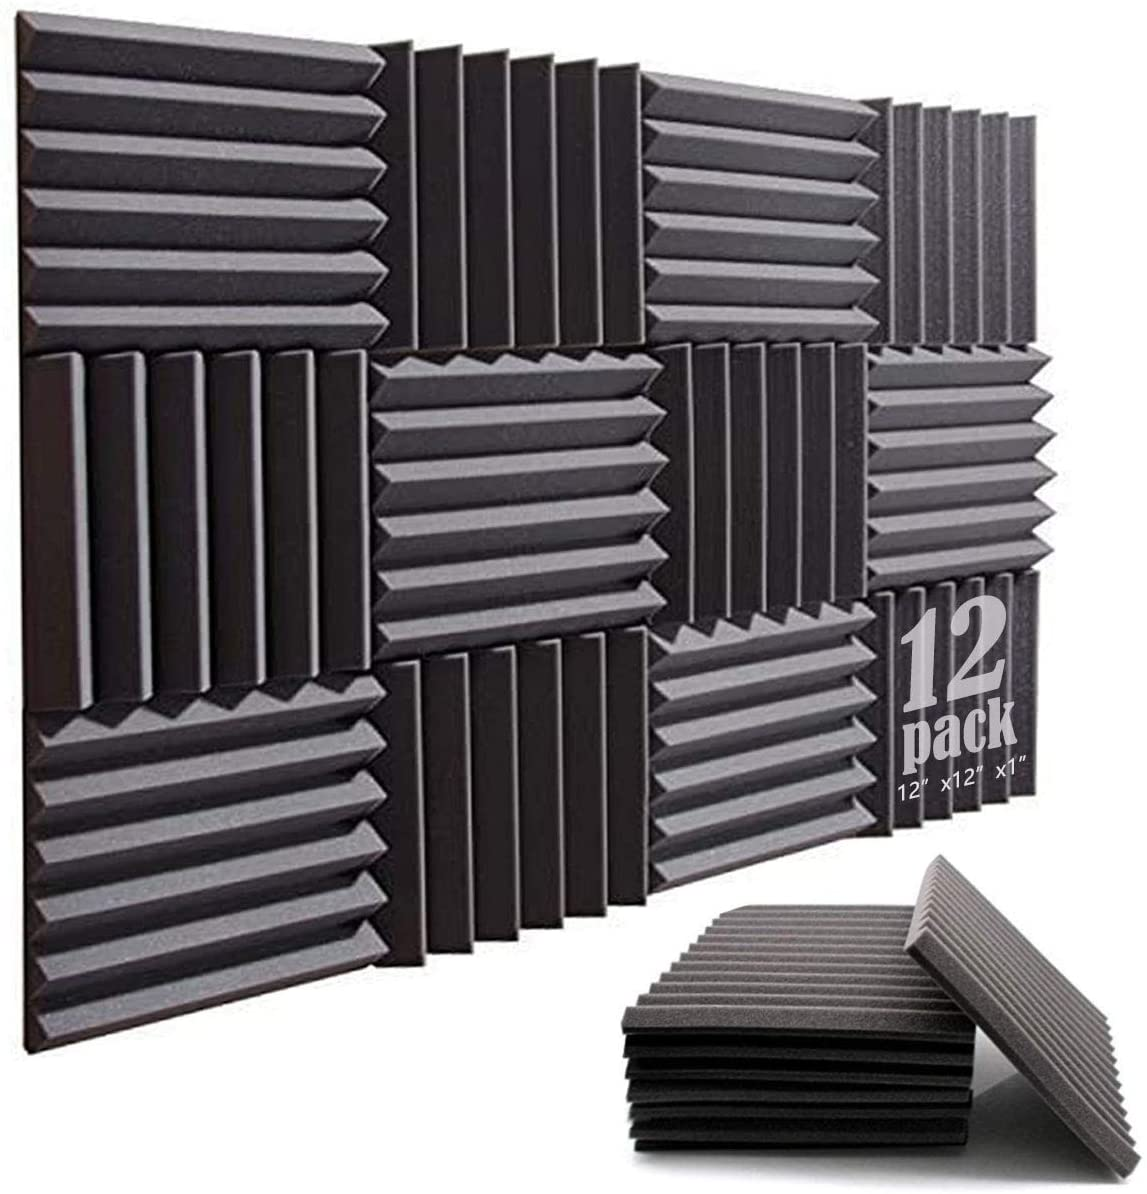 Acoustic Foam Panels 12 Pack, 12